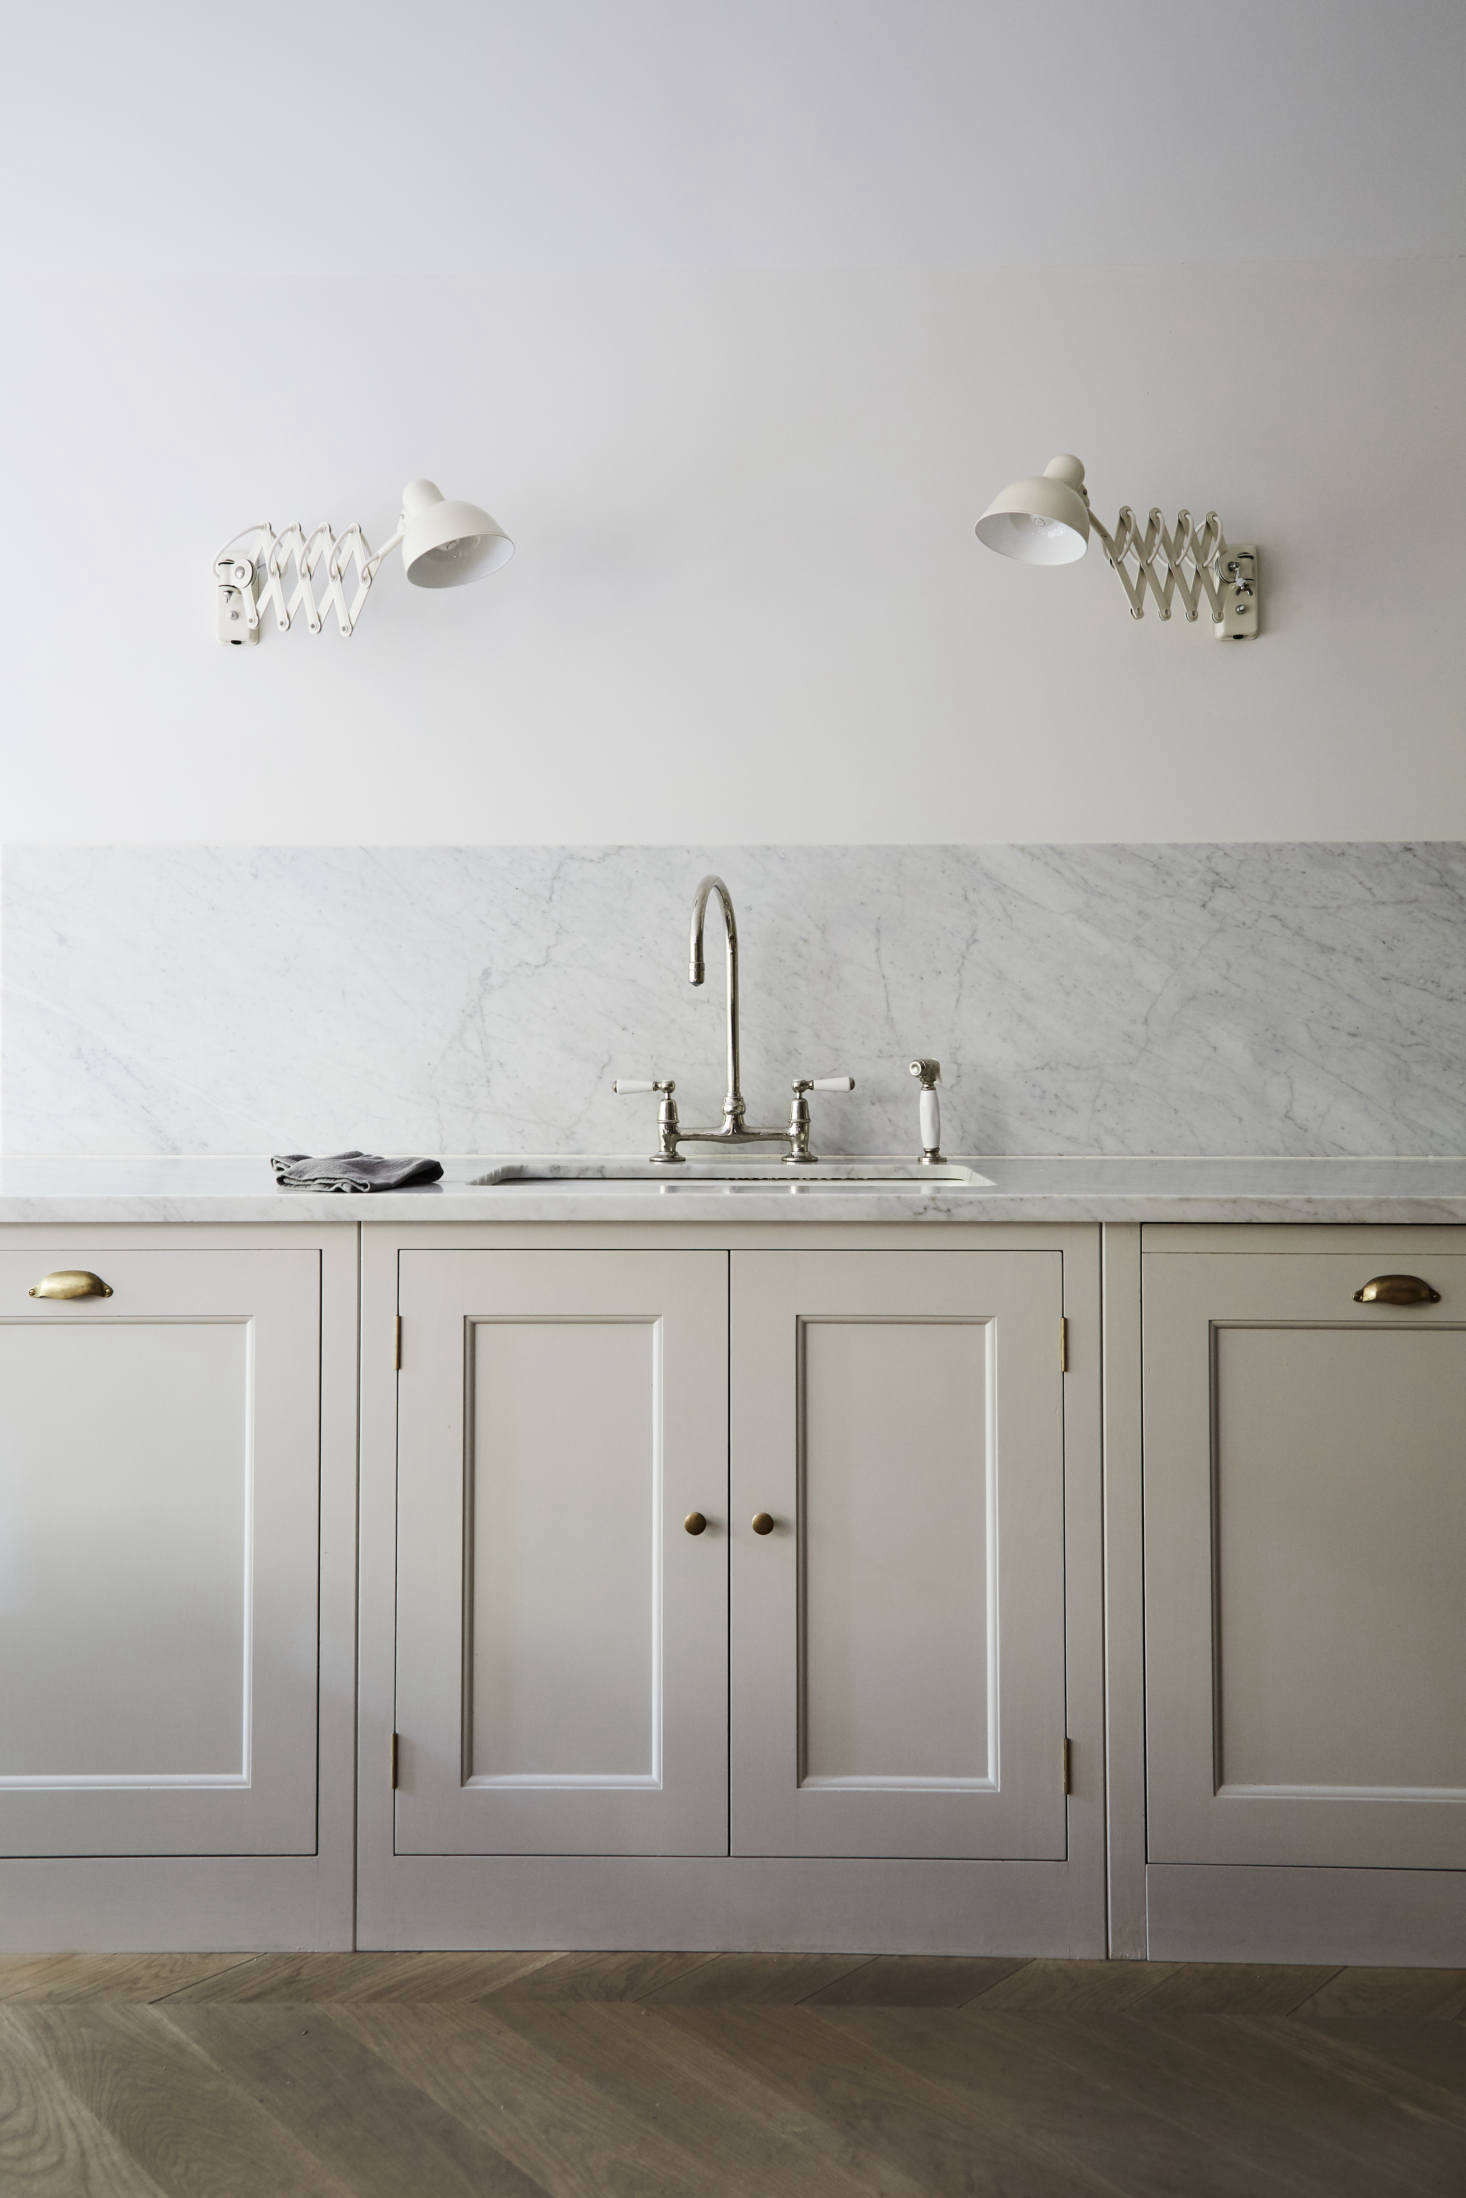 16 Favorite Marble Kitchen Backsplashes For Maximum Drama Remodelista